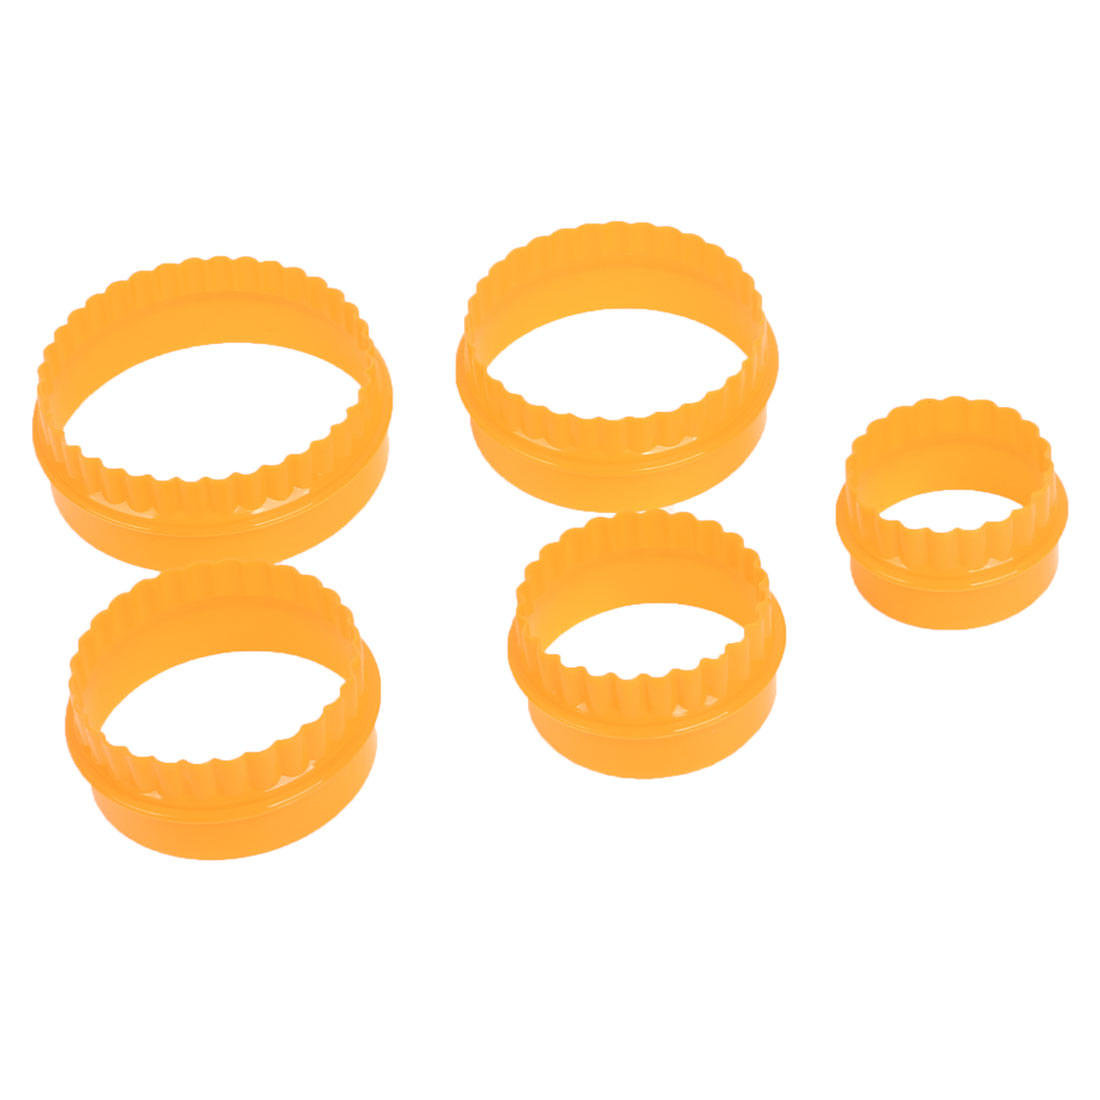 Round Shape Orange Plastic DIY Cookie Cake Cutter Mold Mould 5 in 1